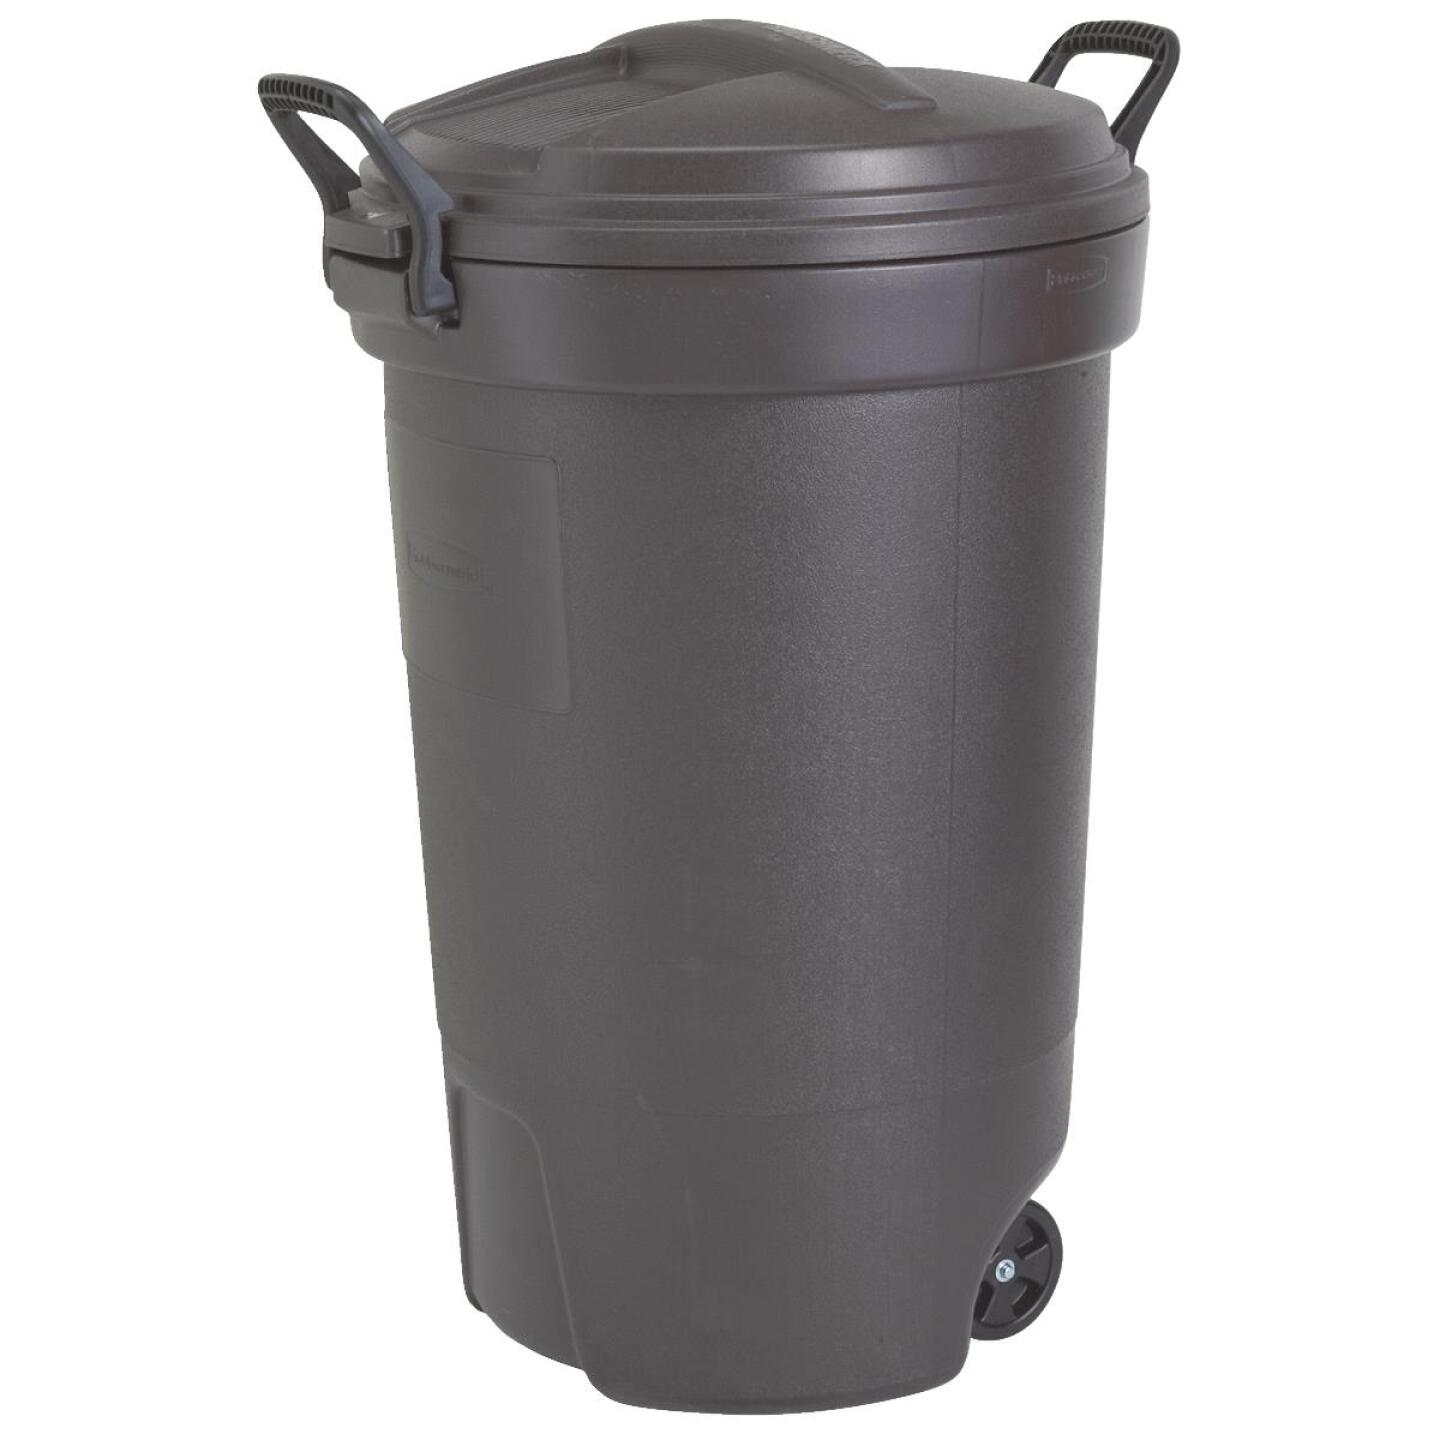 Rubbermaid 32 Gal. Black Wheeled Trash Can with Lid Image 1